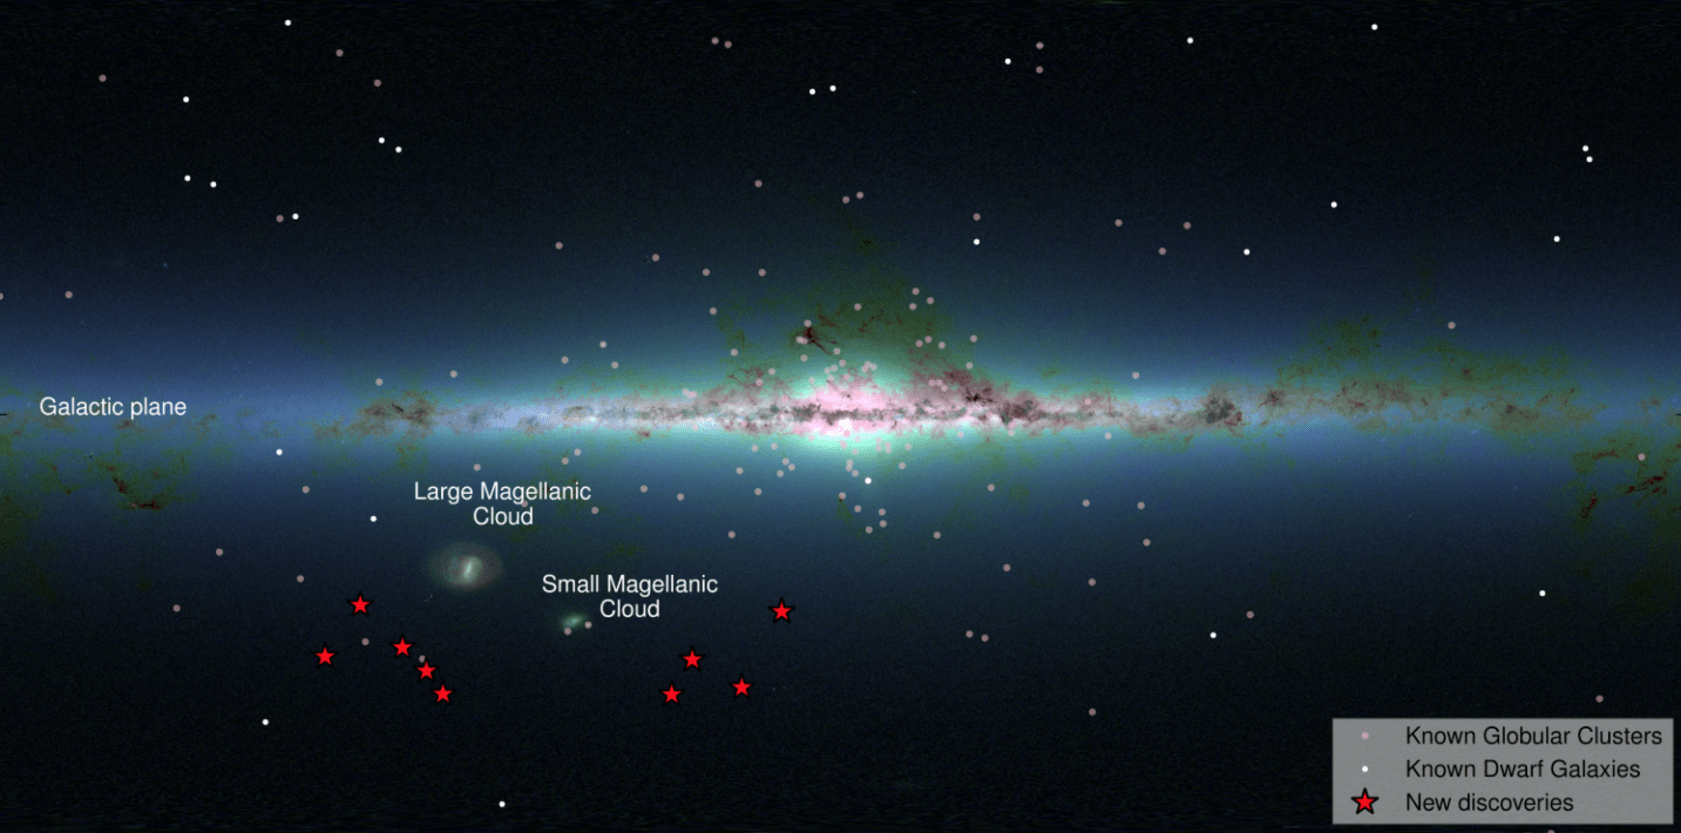 Hidden in Plain Sight: The Milky Way's New Companions